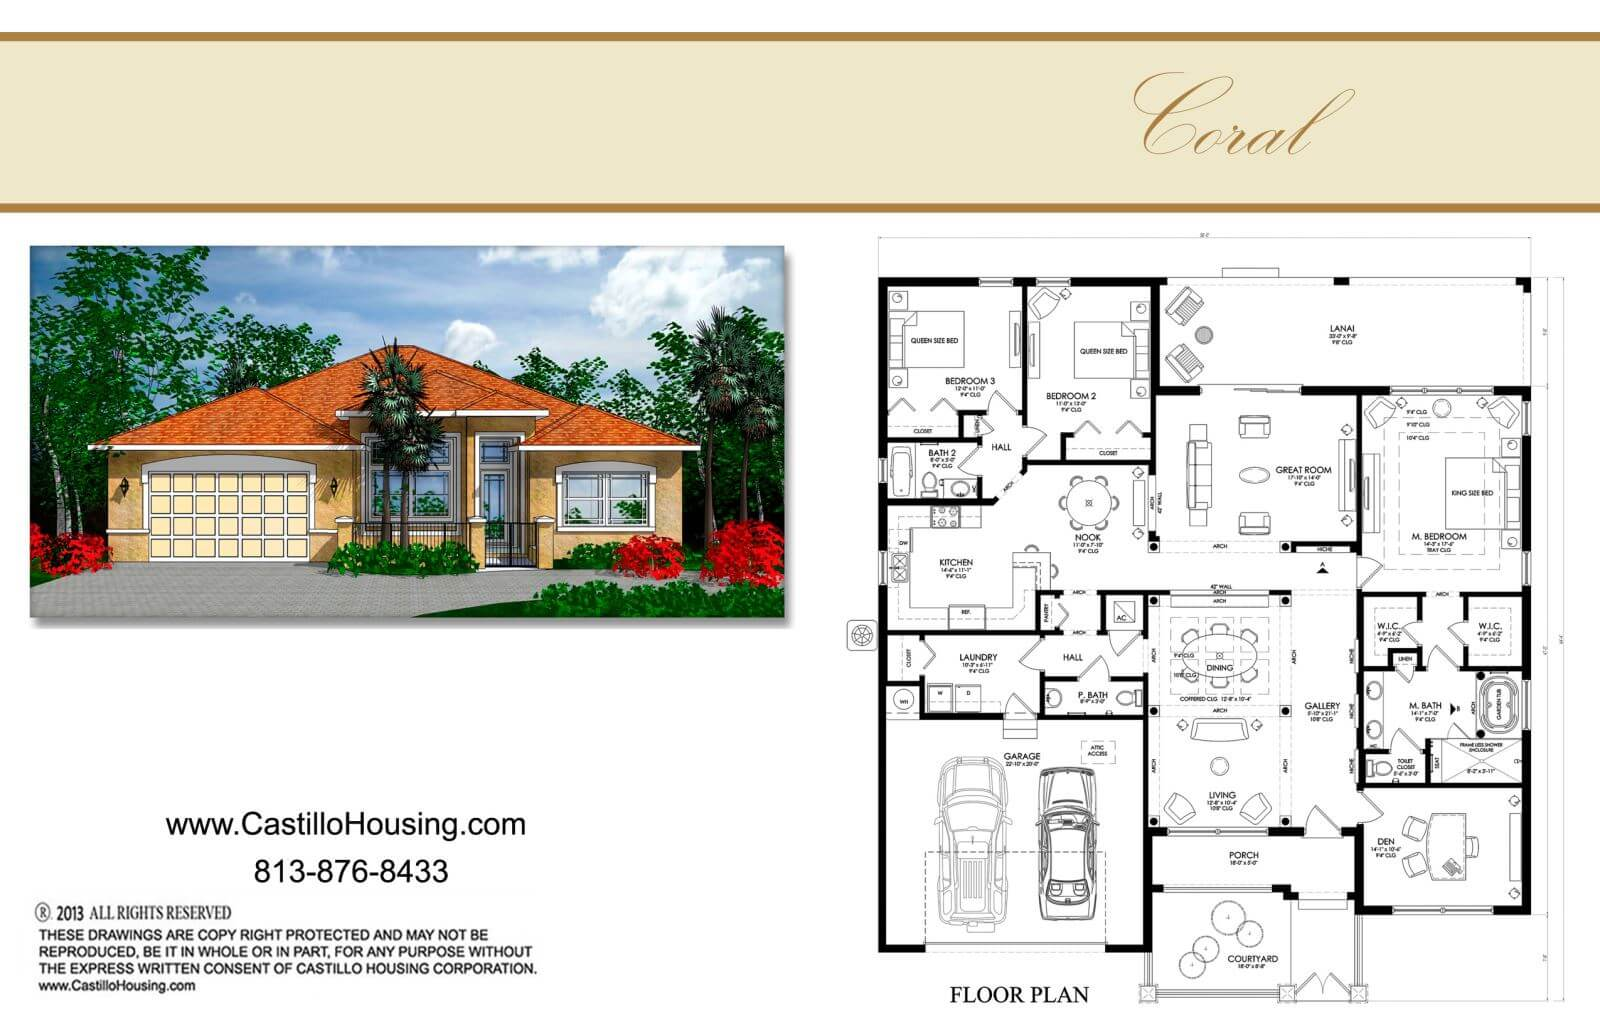 Floor Plans,2,001 SQ FT TO 2,500 SQ FT,1035